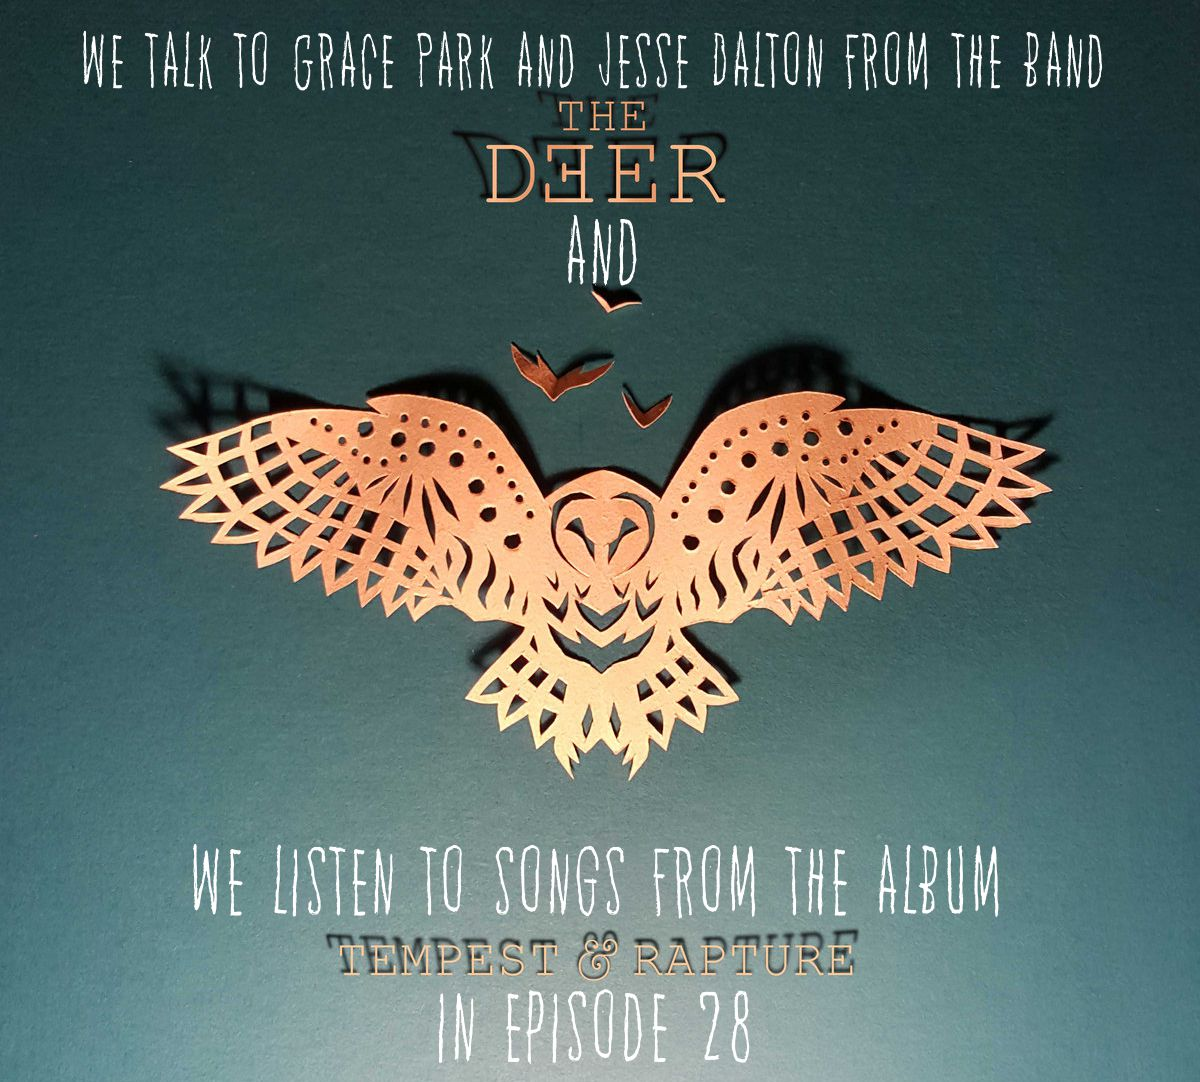 The Deer - From the Aboutsection on thedeermusic.com: